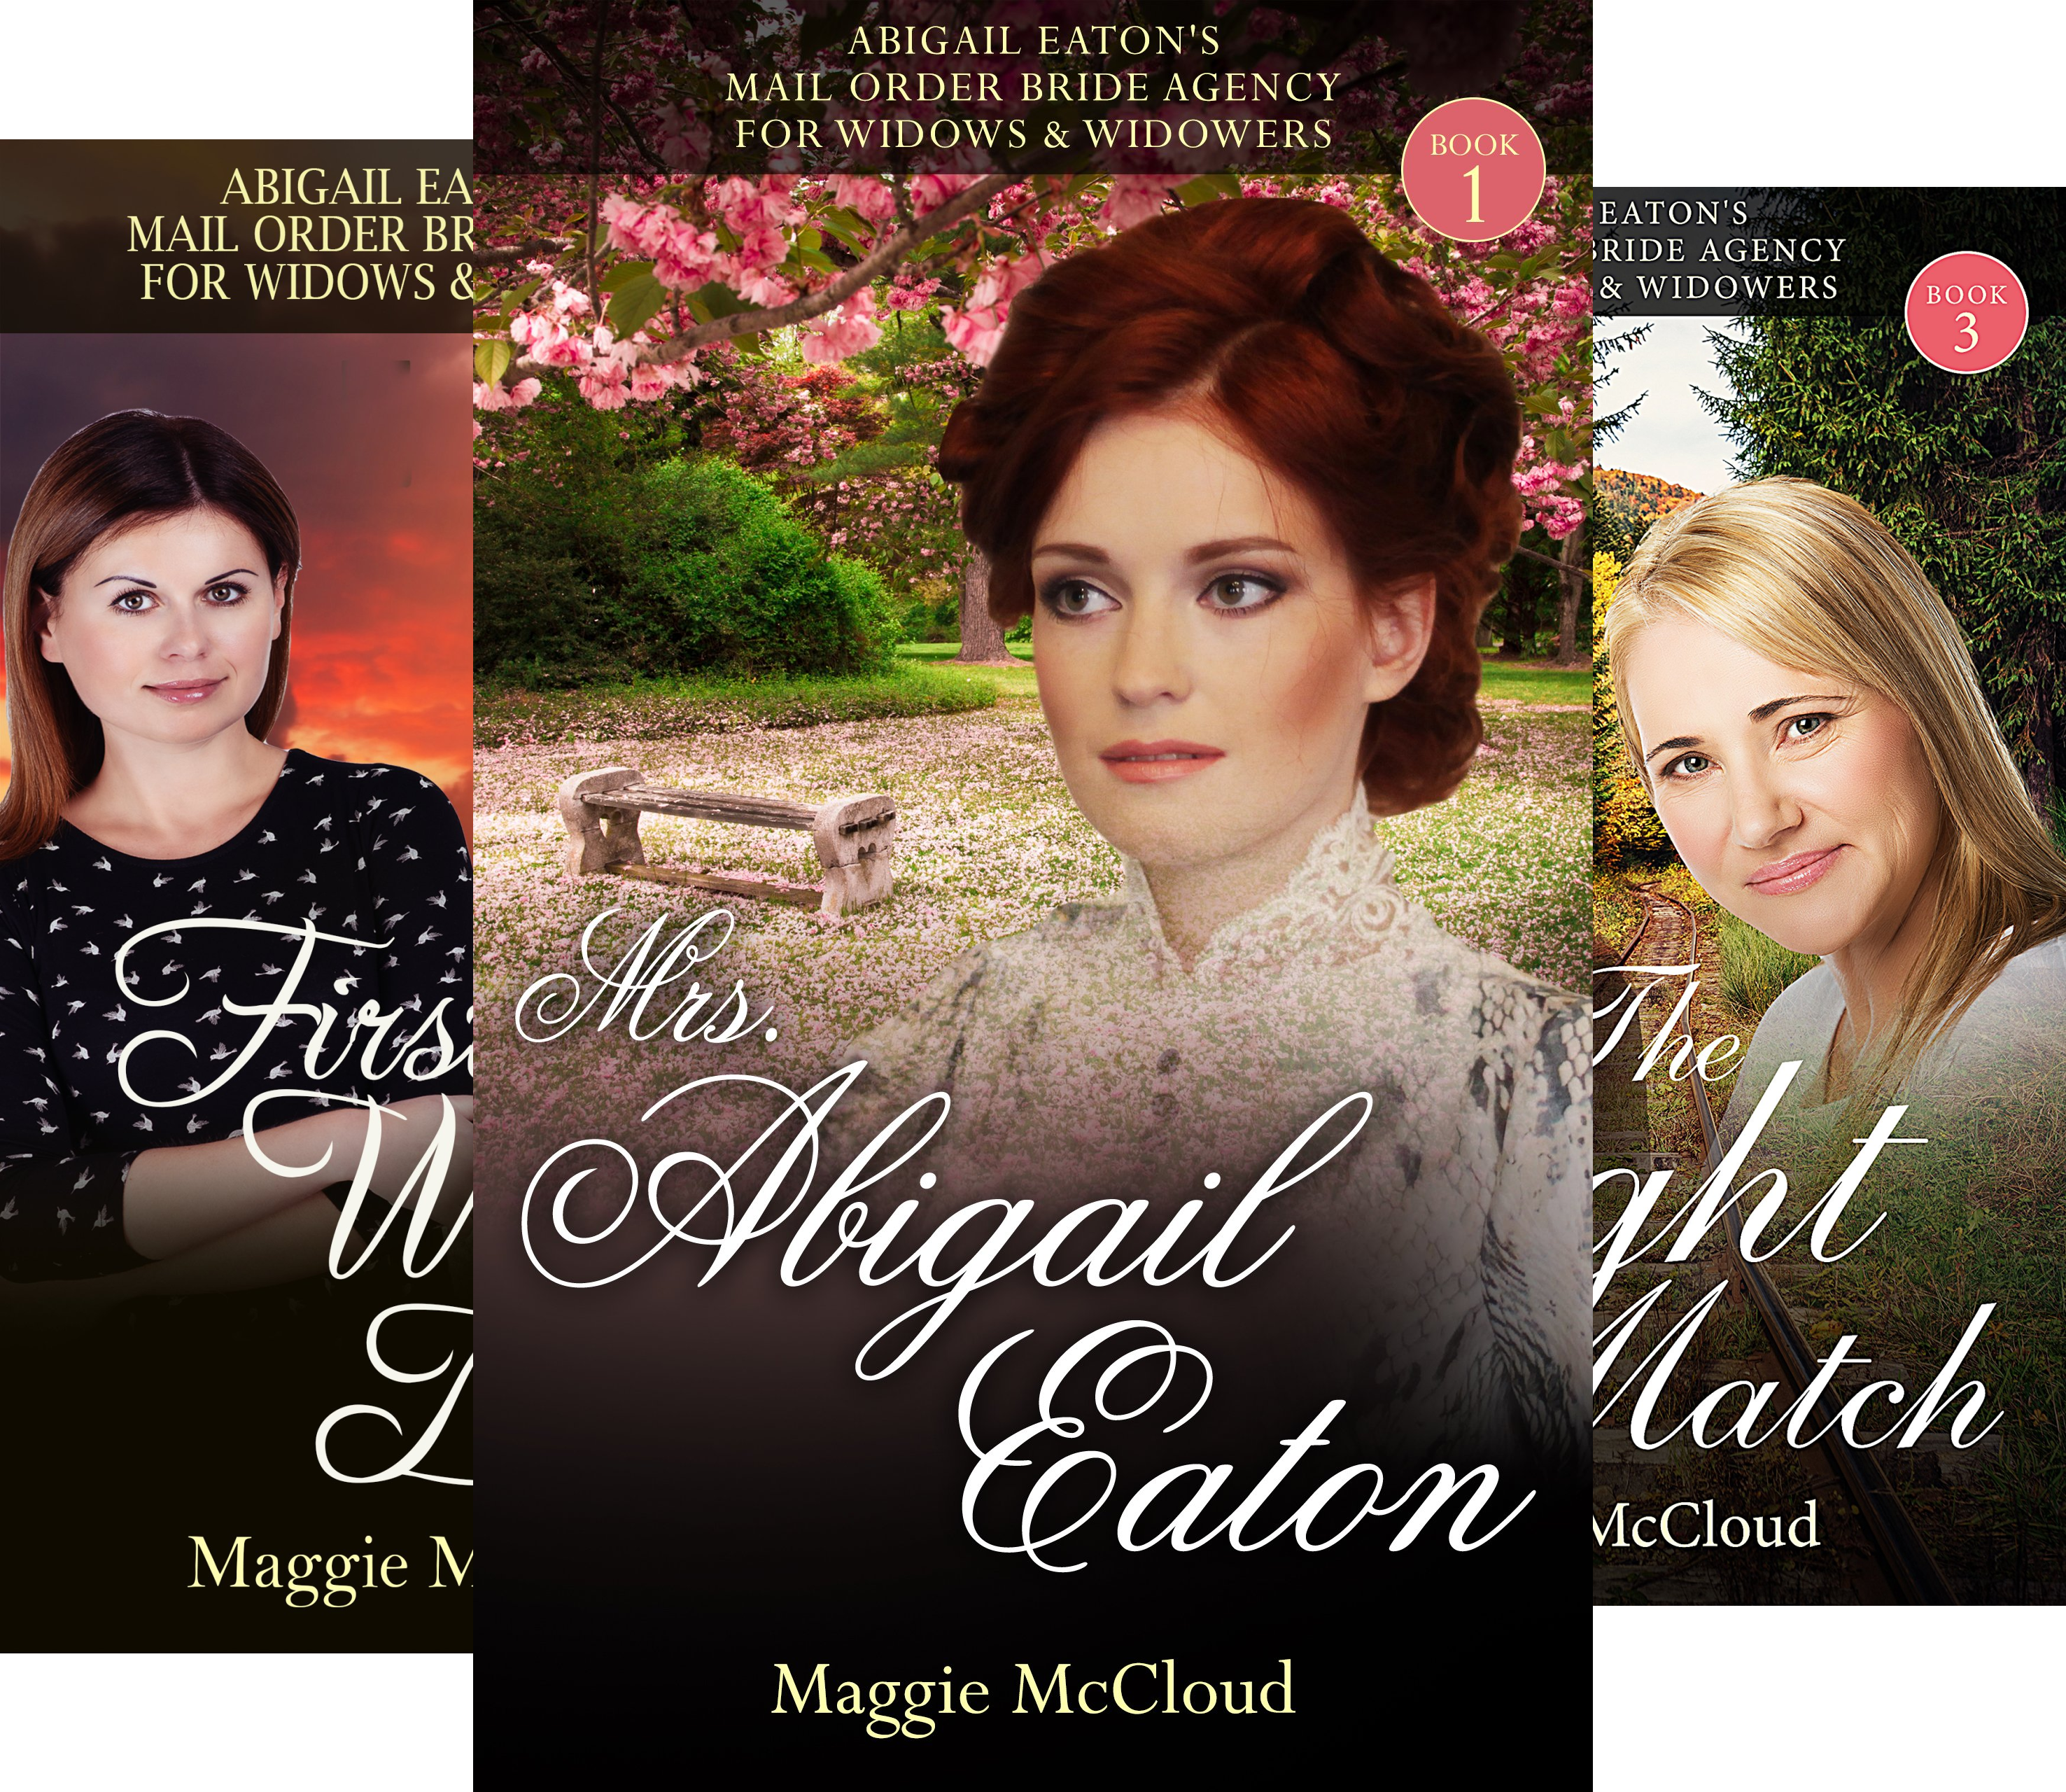 Abigail Eaton's Mail Order Bride Agency For Widows & Widowers (4 Book Series)